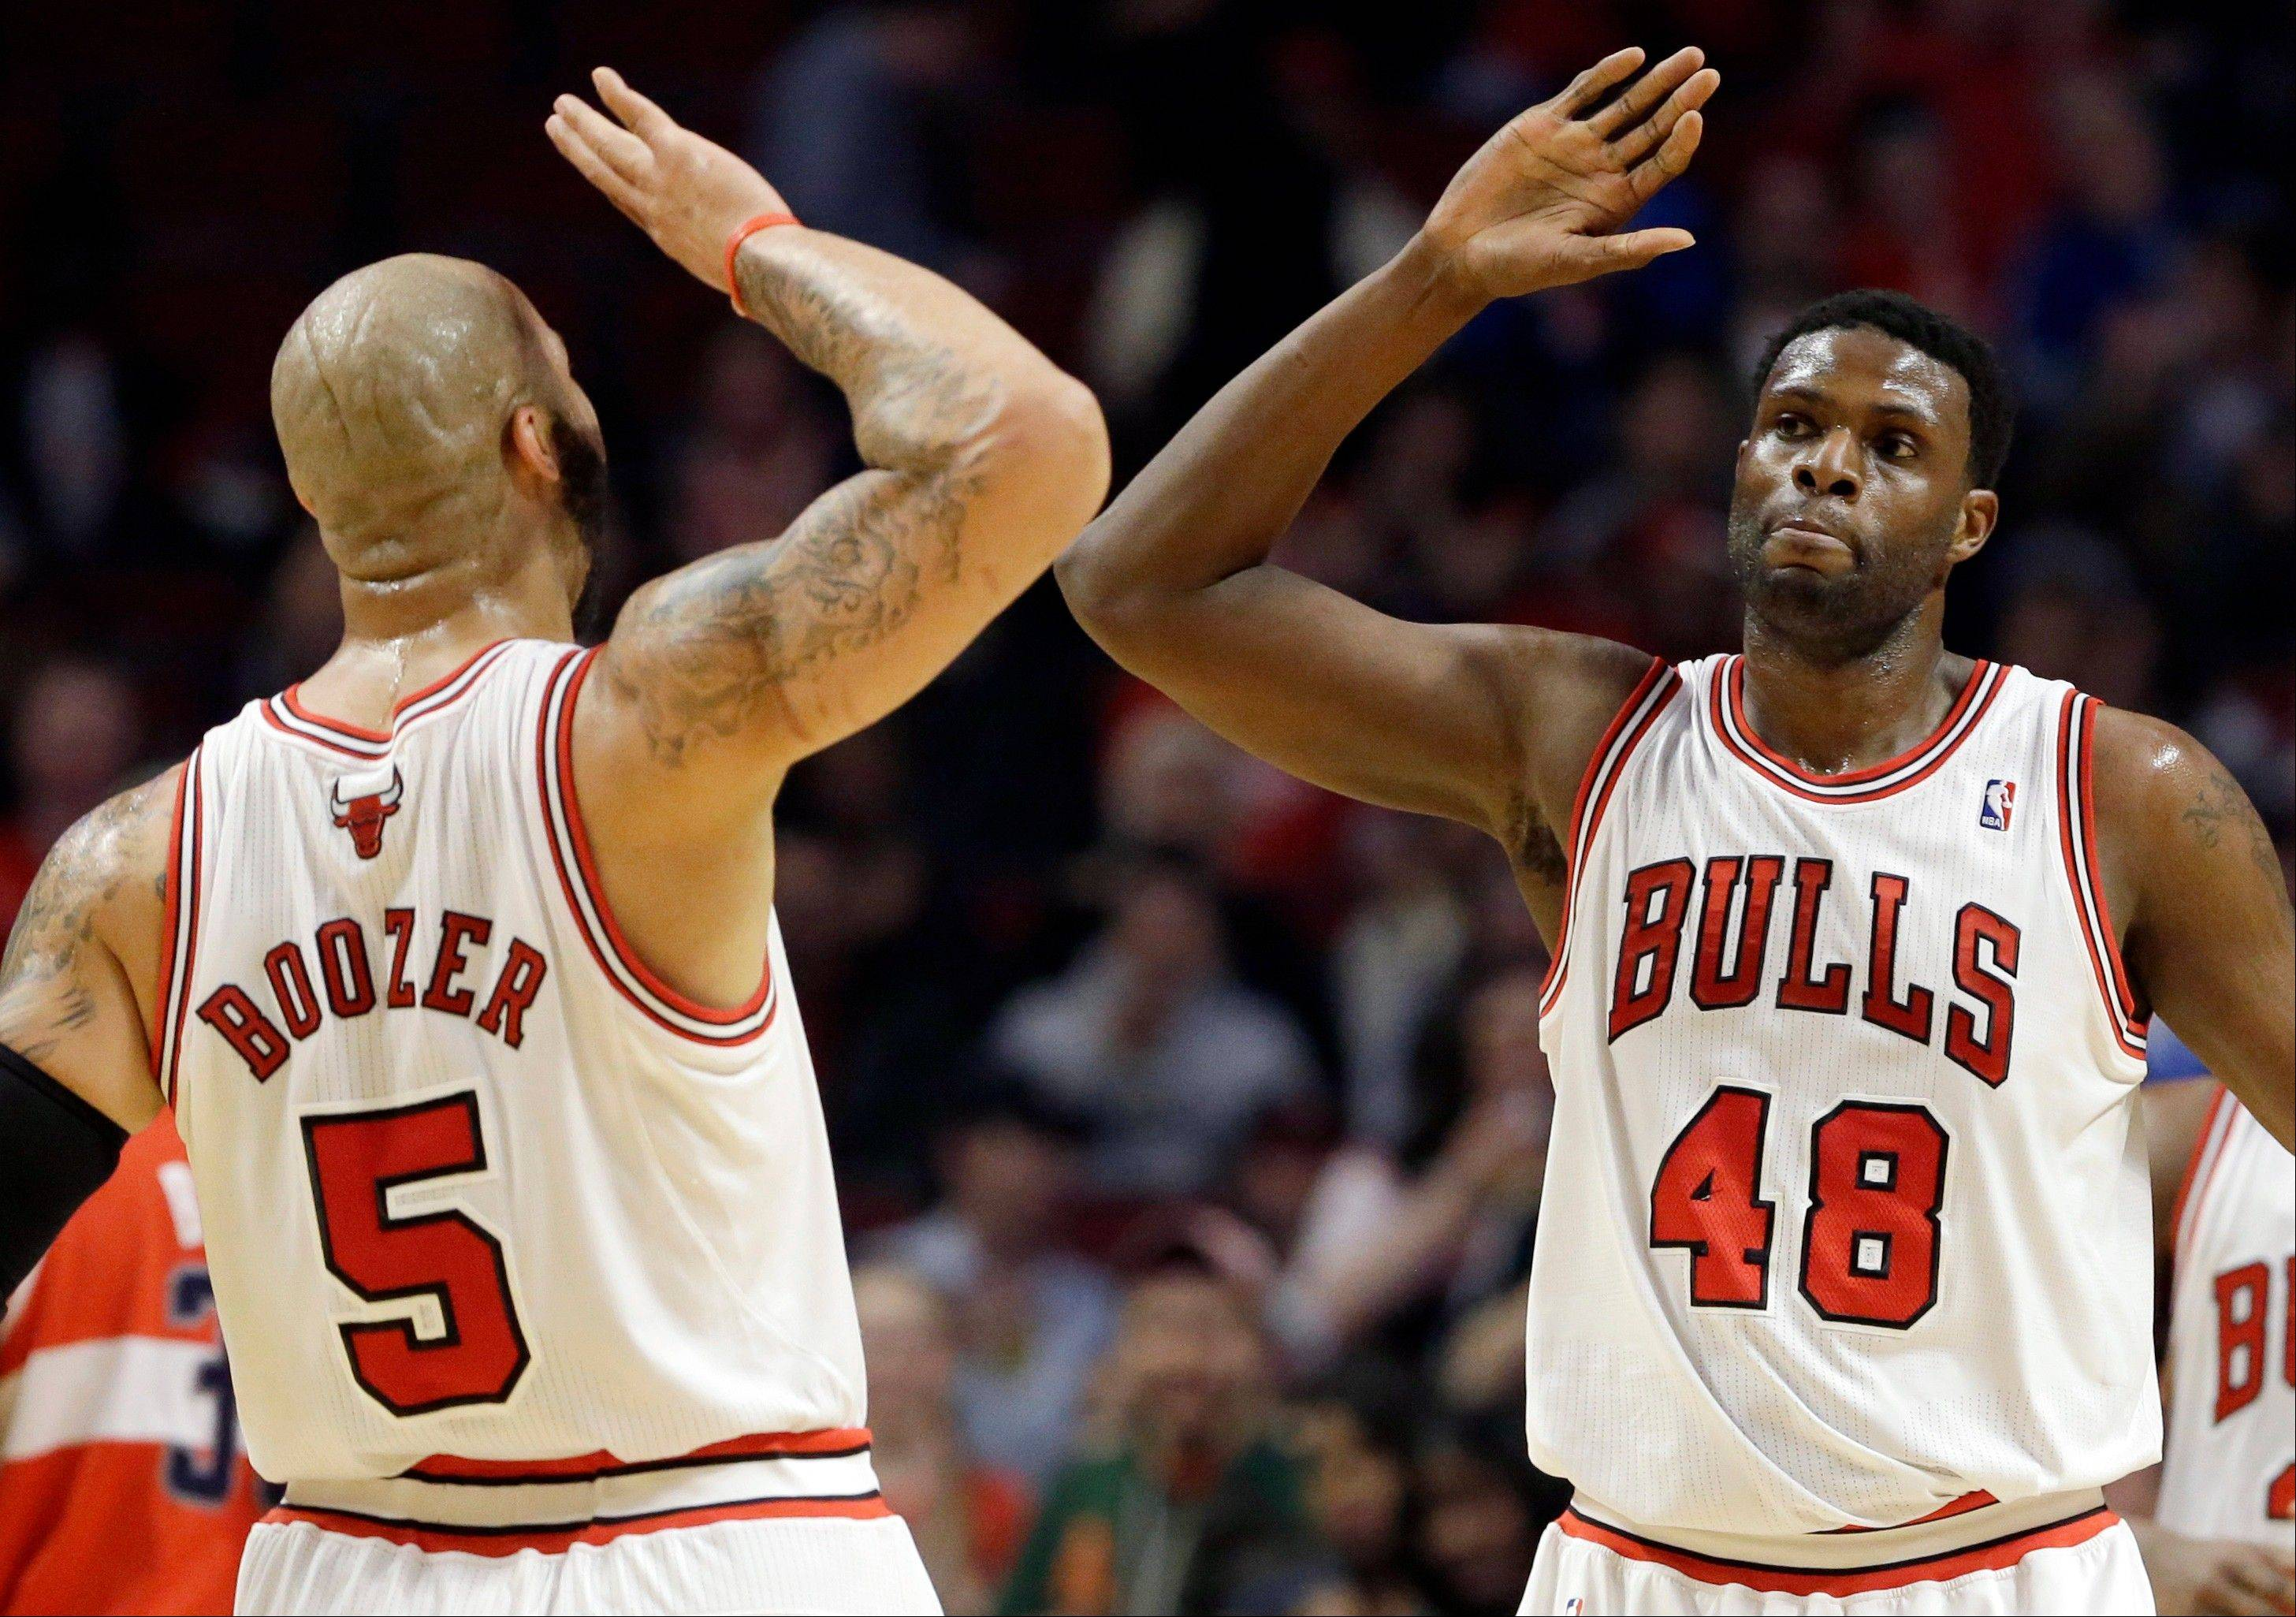 Chicago Bulls center Nazr Mohammed, right, celebrates with forward Carlos Boozer after scoring a basket during the first half of an NBA basketball game against the Washington Wizards in Chicago, Wednesday, April 17, 2013.